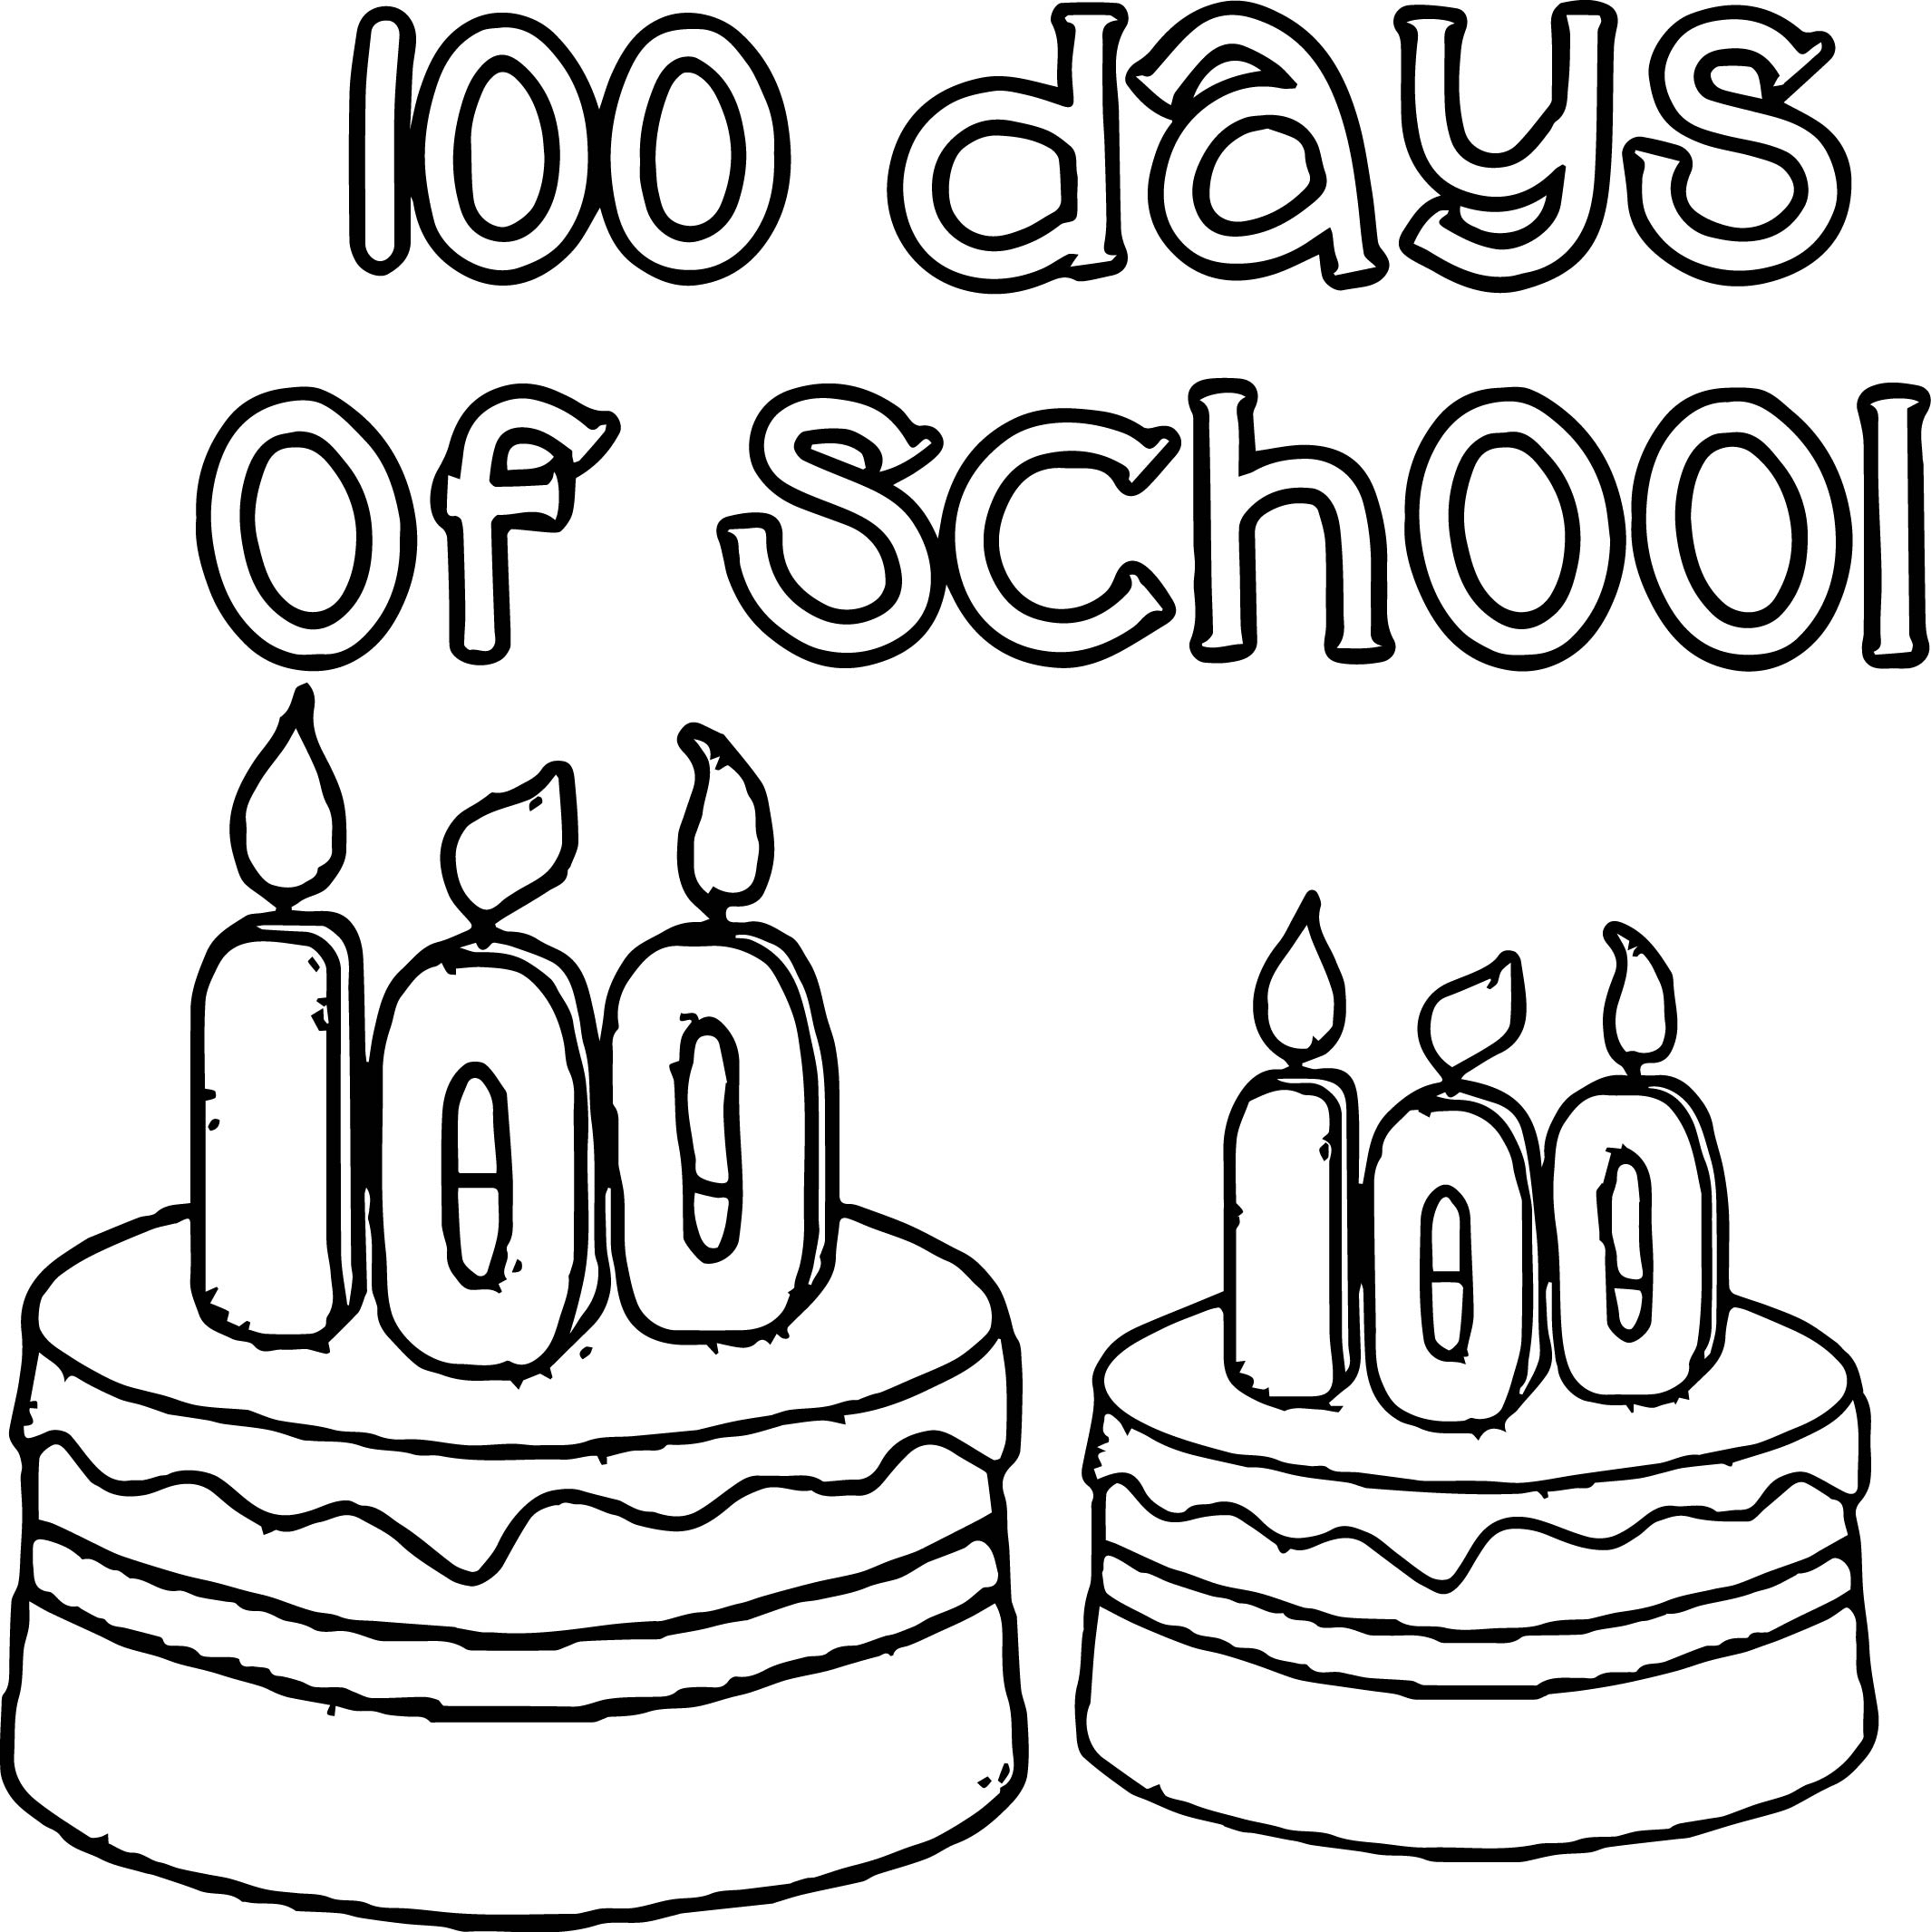 100 days of birthday coloring page wecoloringpage